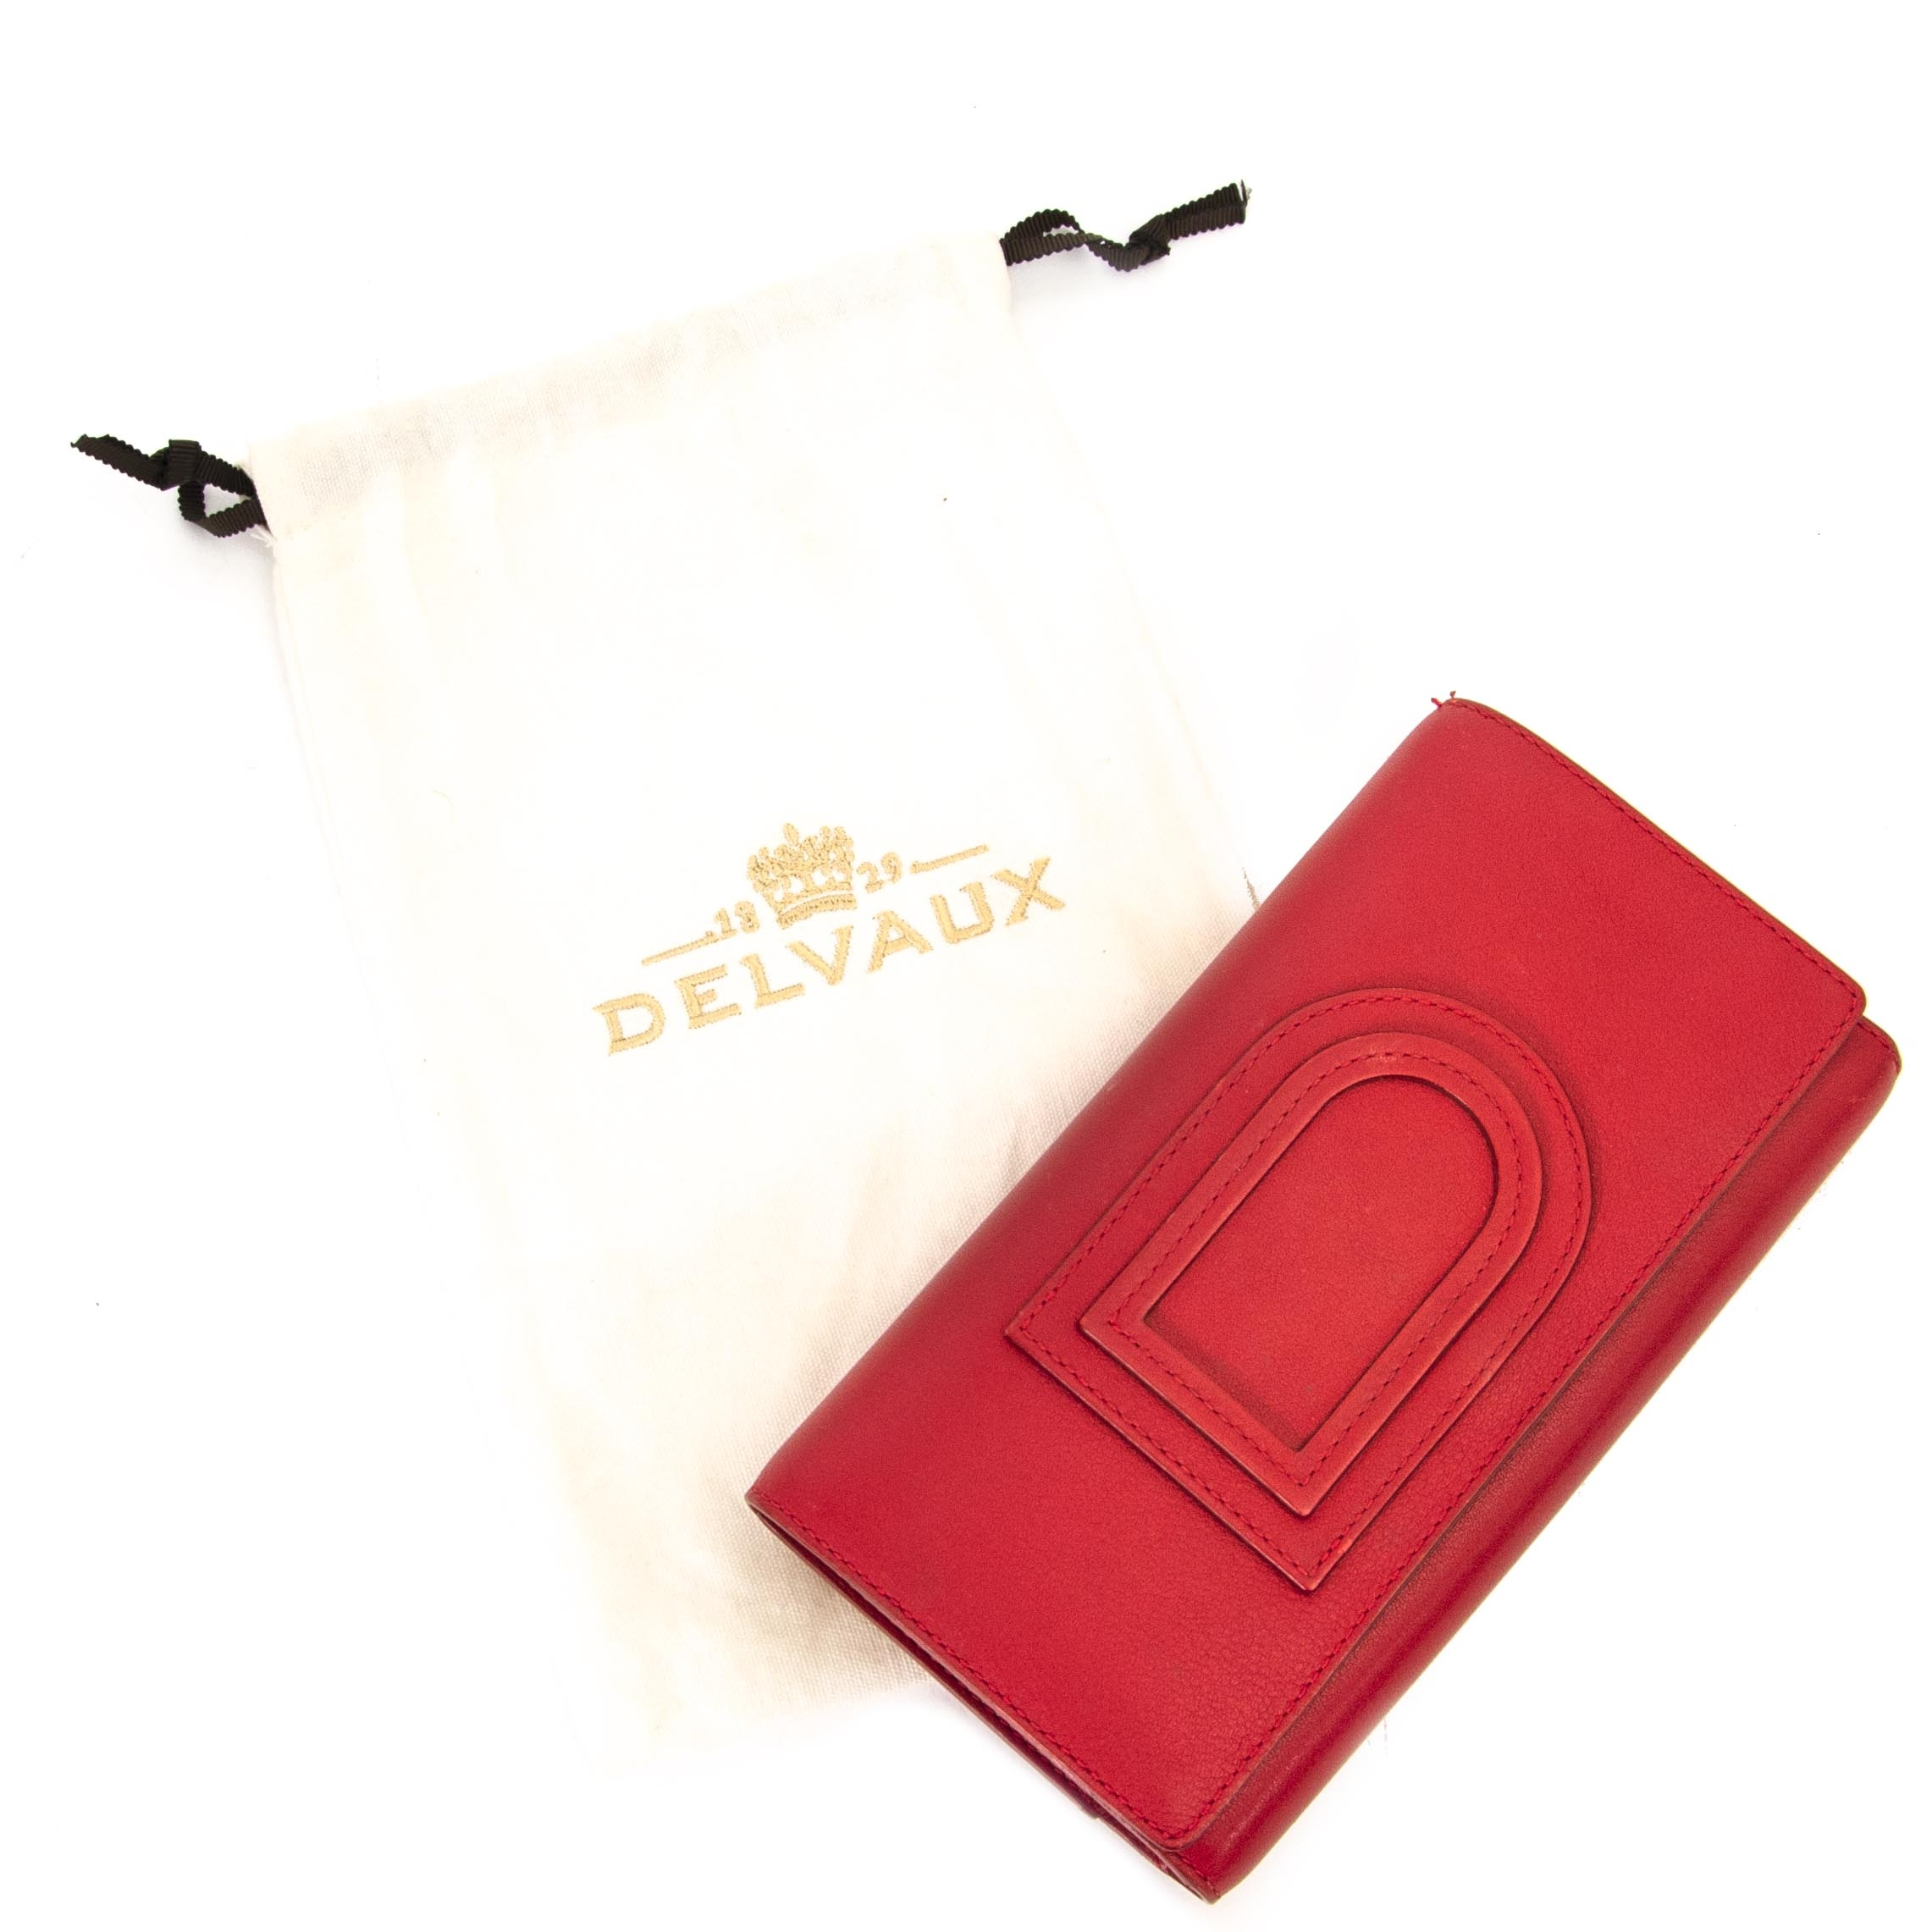 Delvaux Lipstck Red Trifold Wallet for sale online at Labellov secondhand luxury